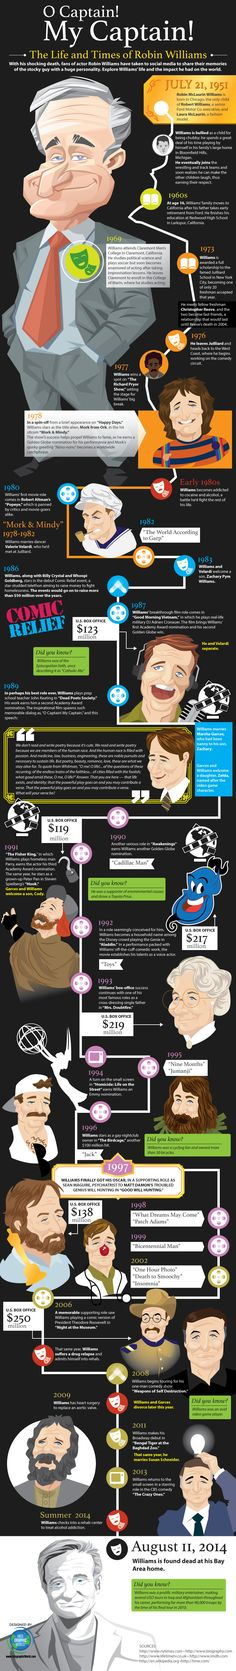 The world lost both a comedic legend and a great human being with the death of Robin Williams recently. http://infographicworld.com/life-times-robin-williams/